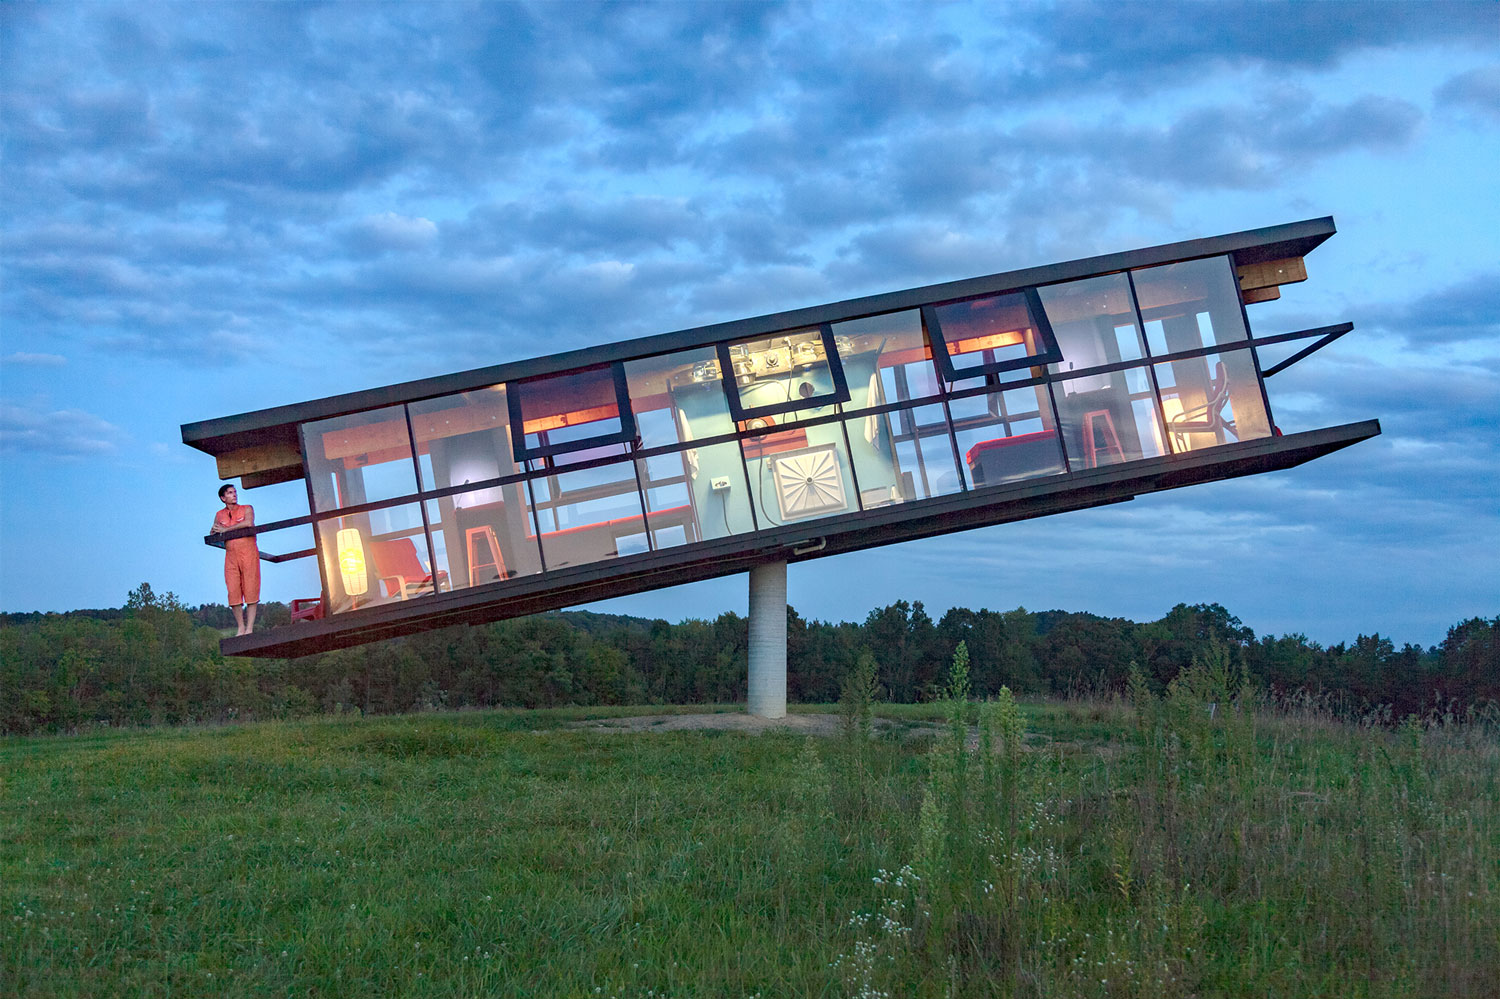 ReActor: a Tilting House That Shifts and Spins Based on its Inhabitants' Movements | Colossal